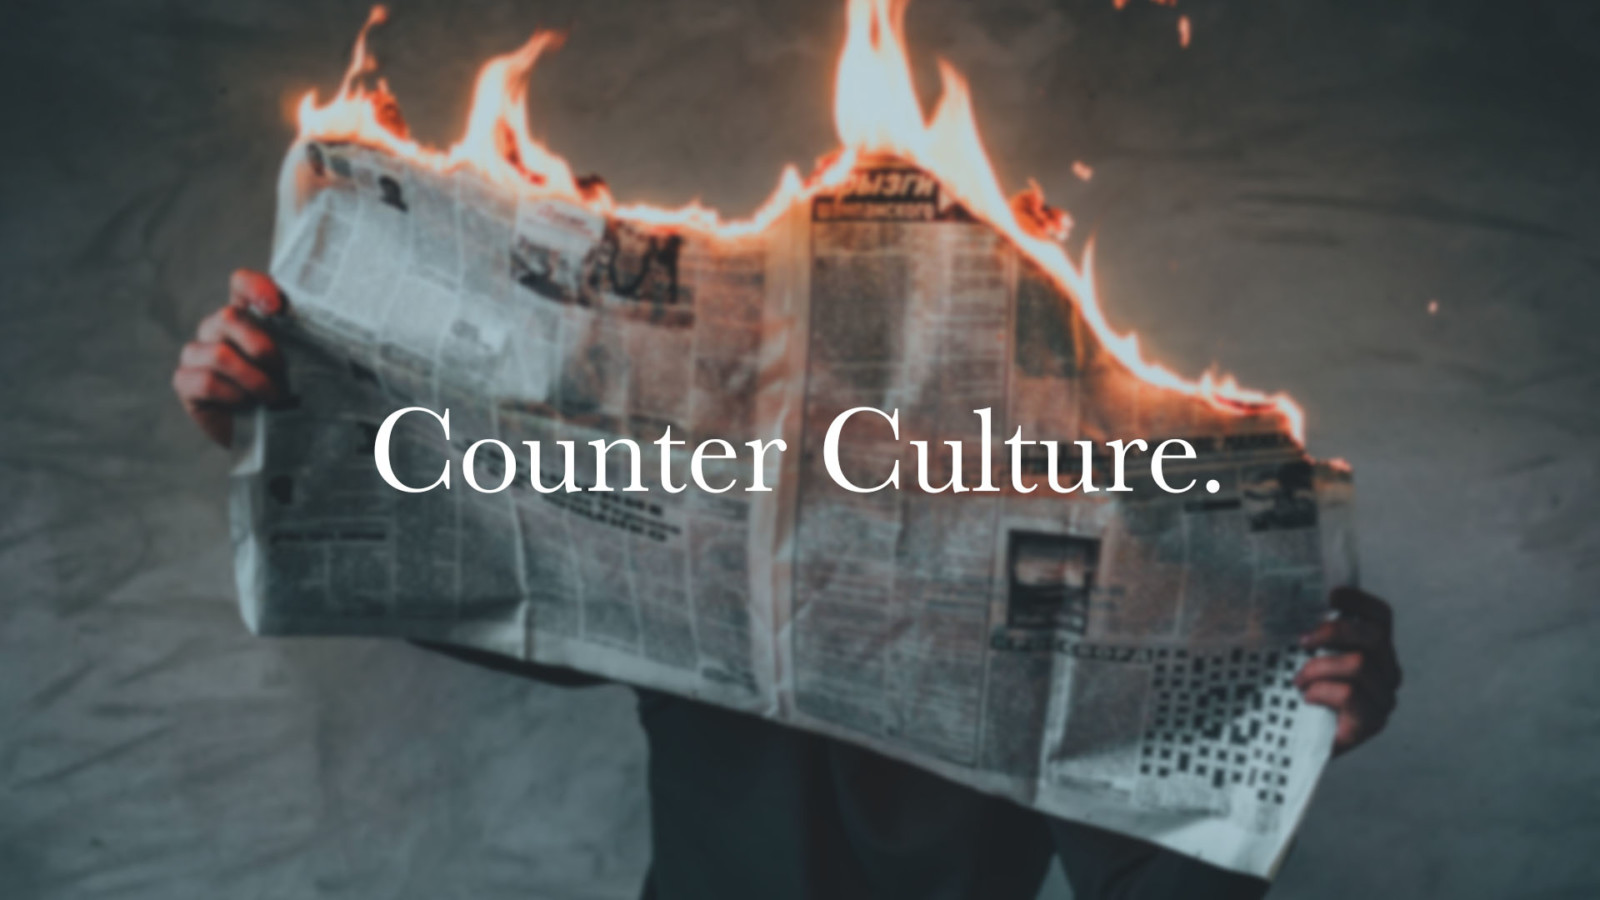 Counter Culture Duane Sheriff Ministries